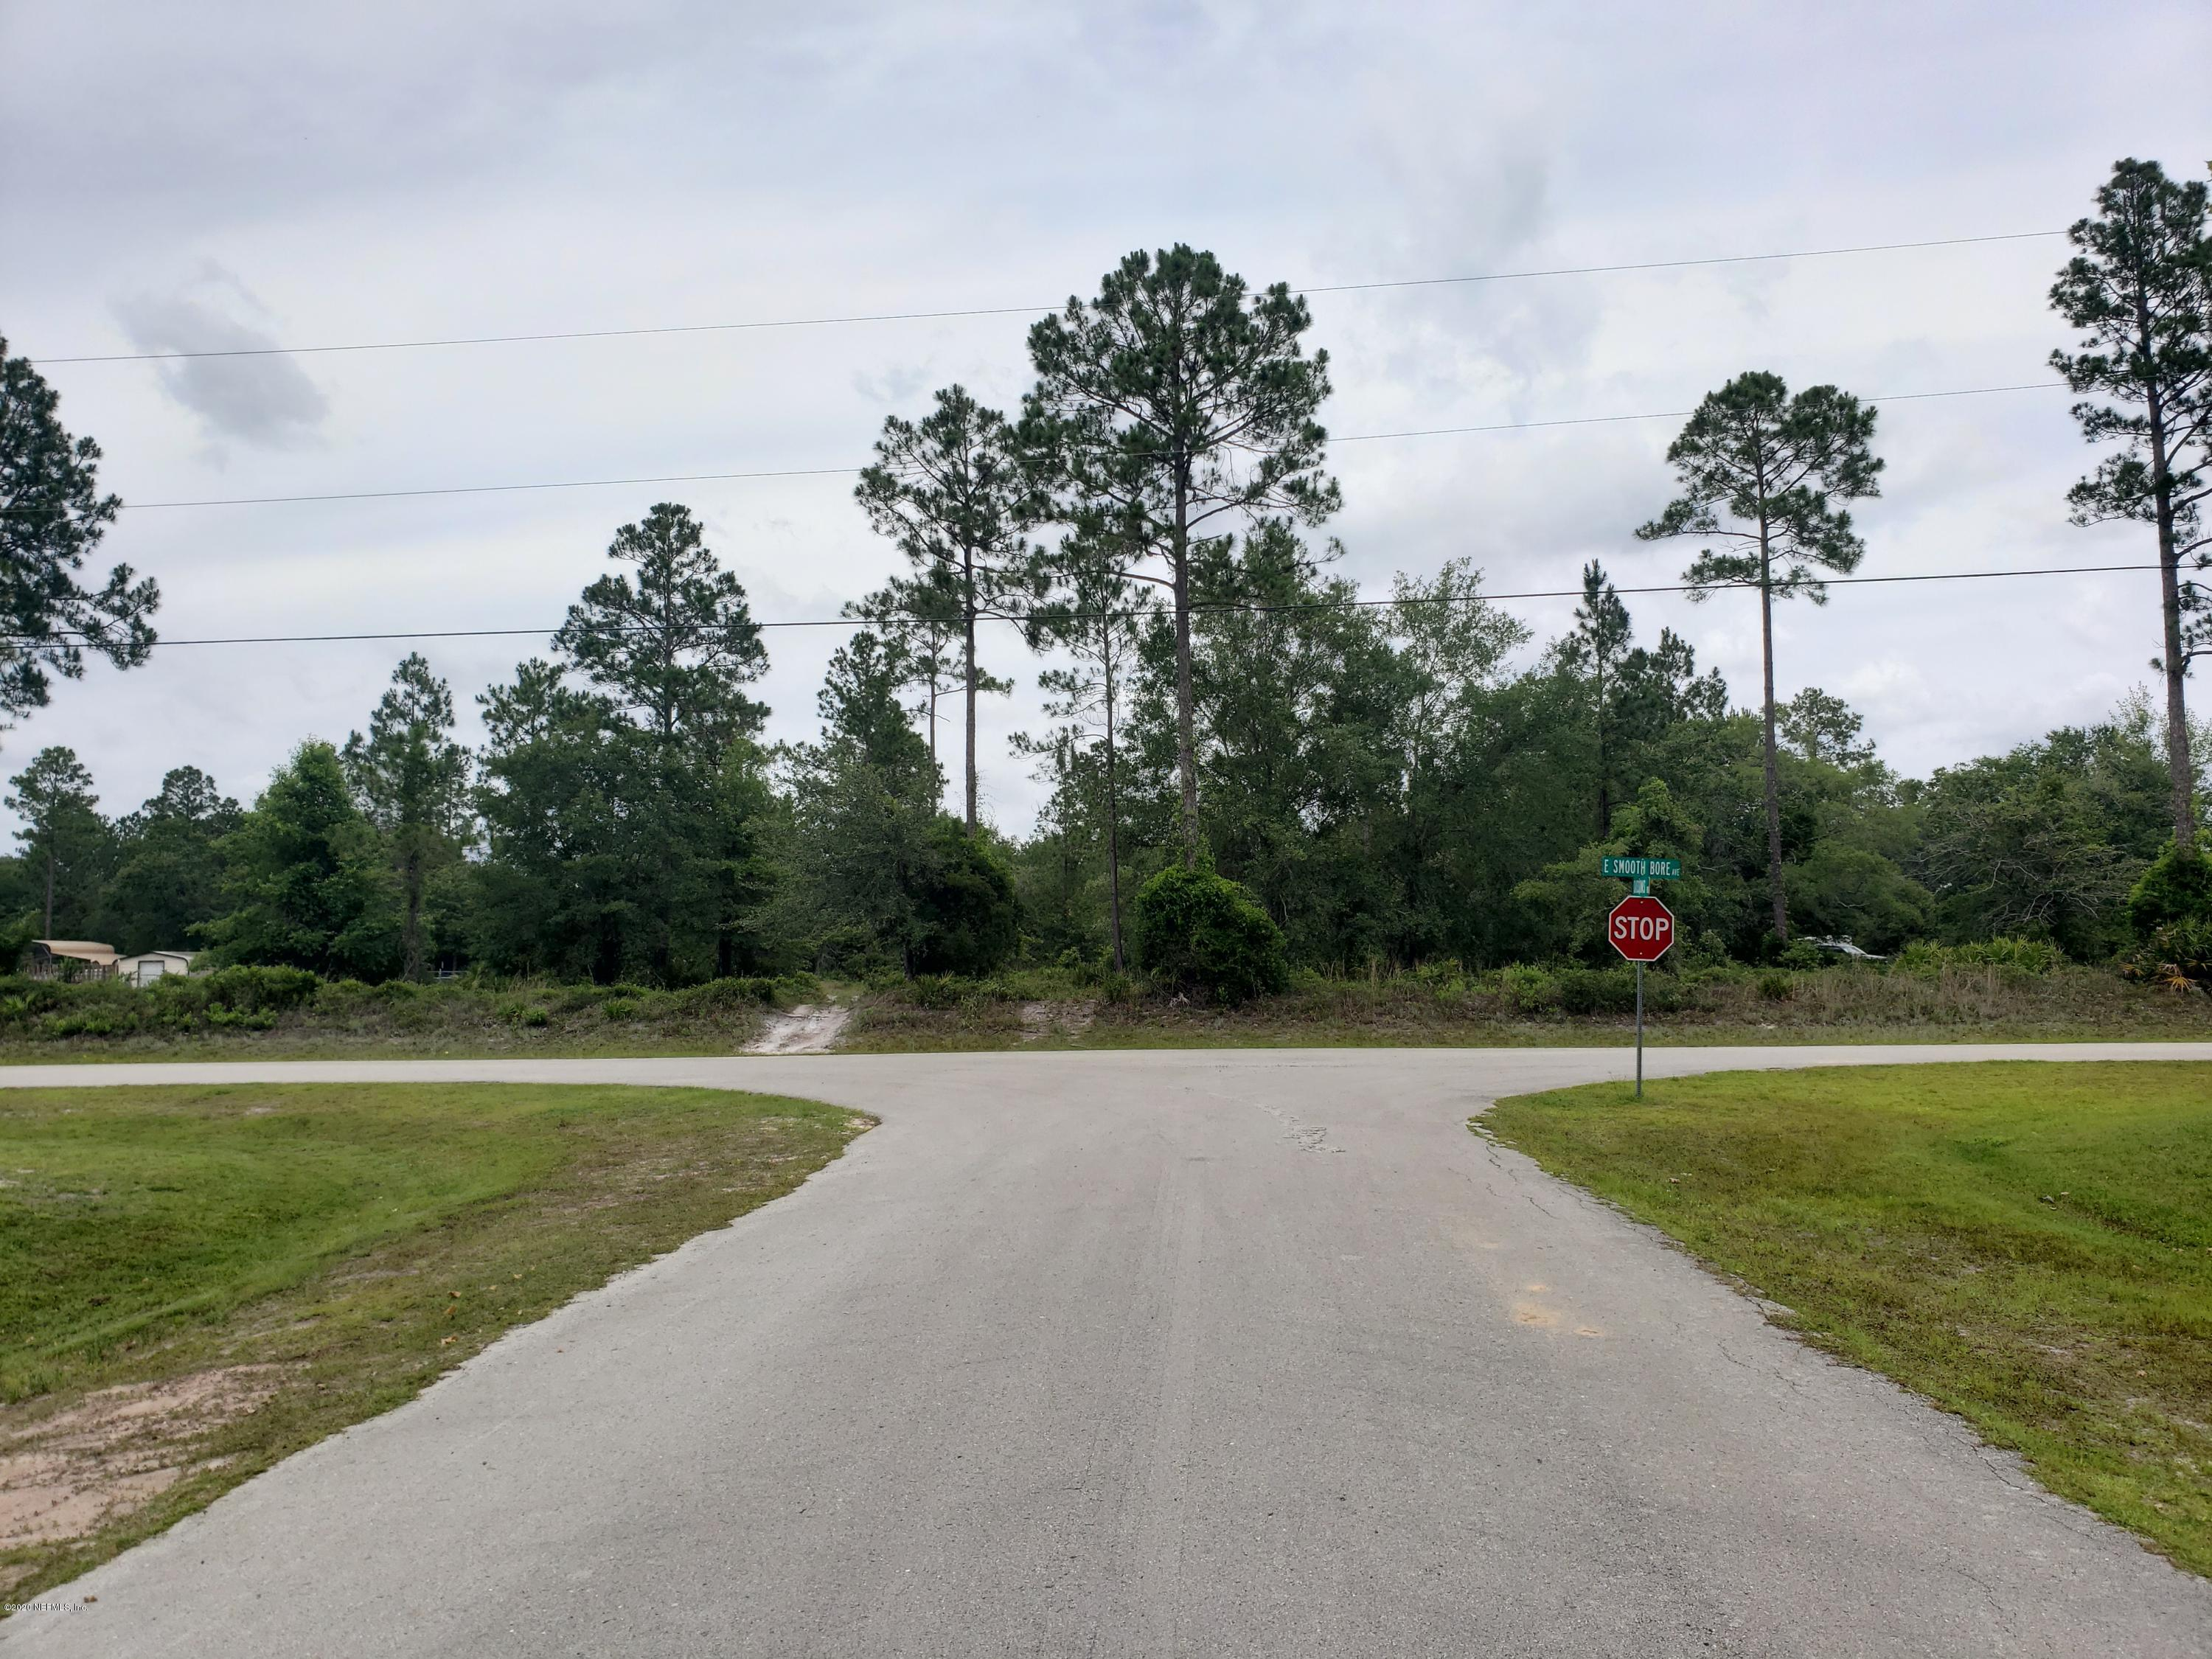 0 SMOOTHBORE, GLEN ST. MARY, FLORIDA 32040, ,Vacant land,For sale,SMOOTHBORE,1056795